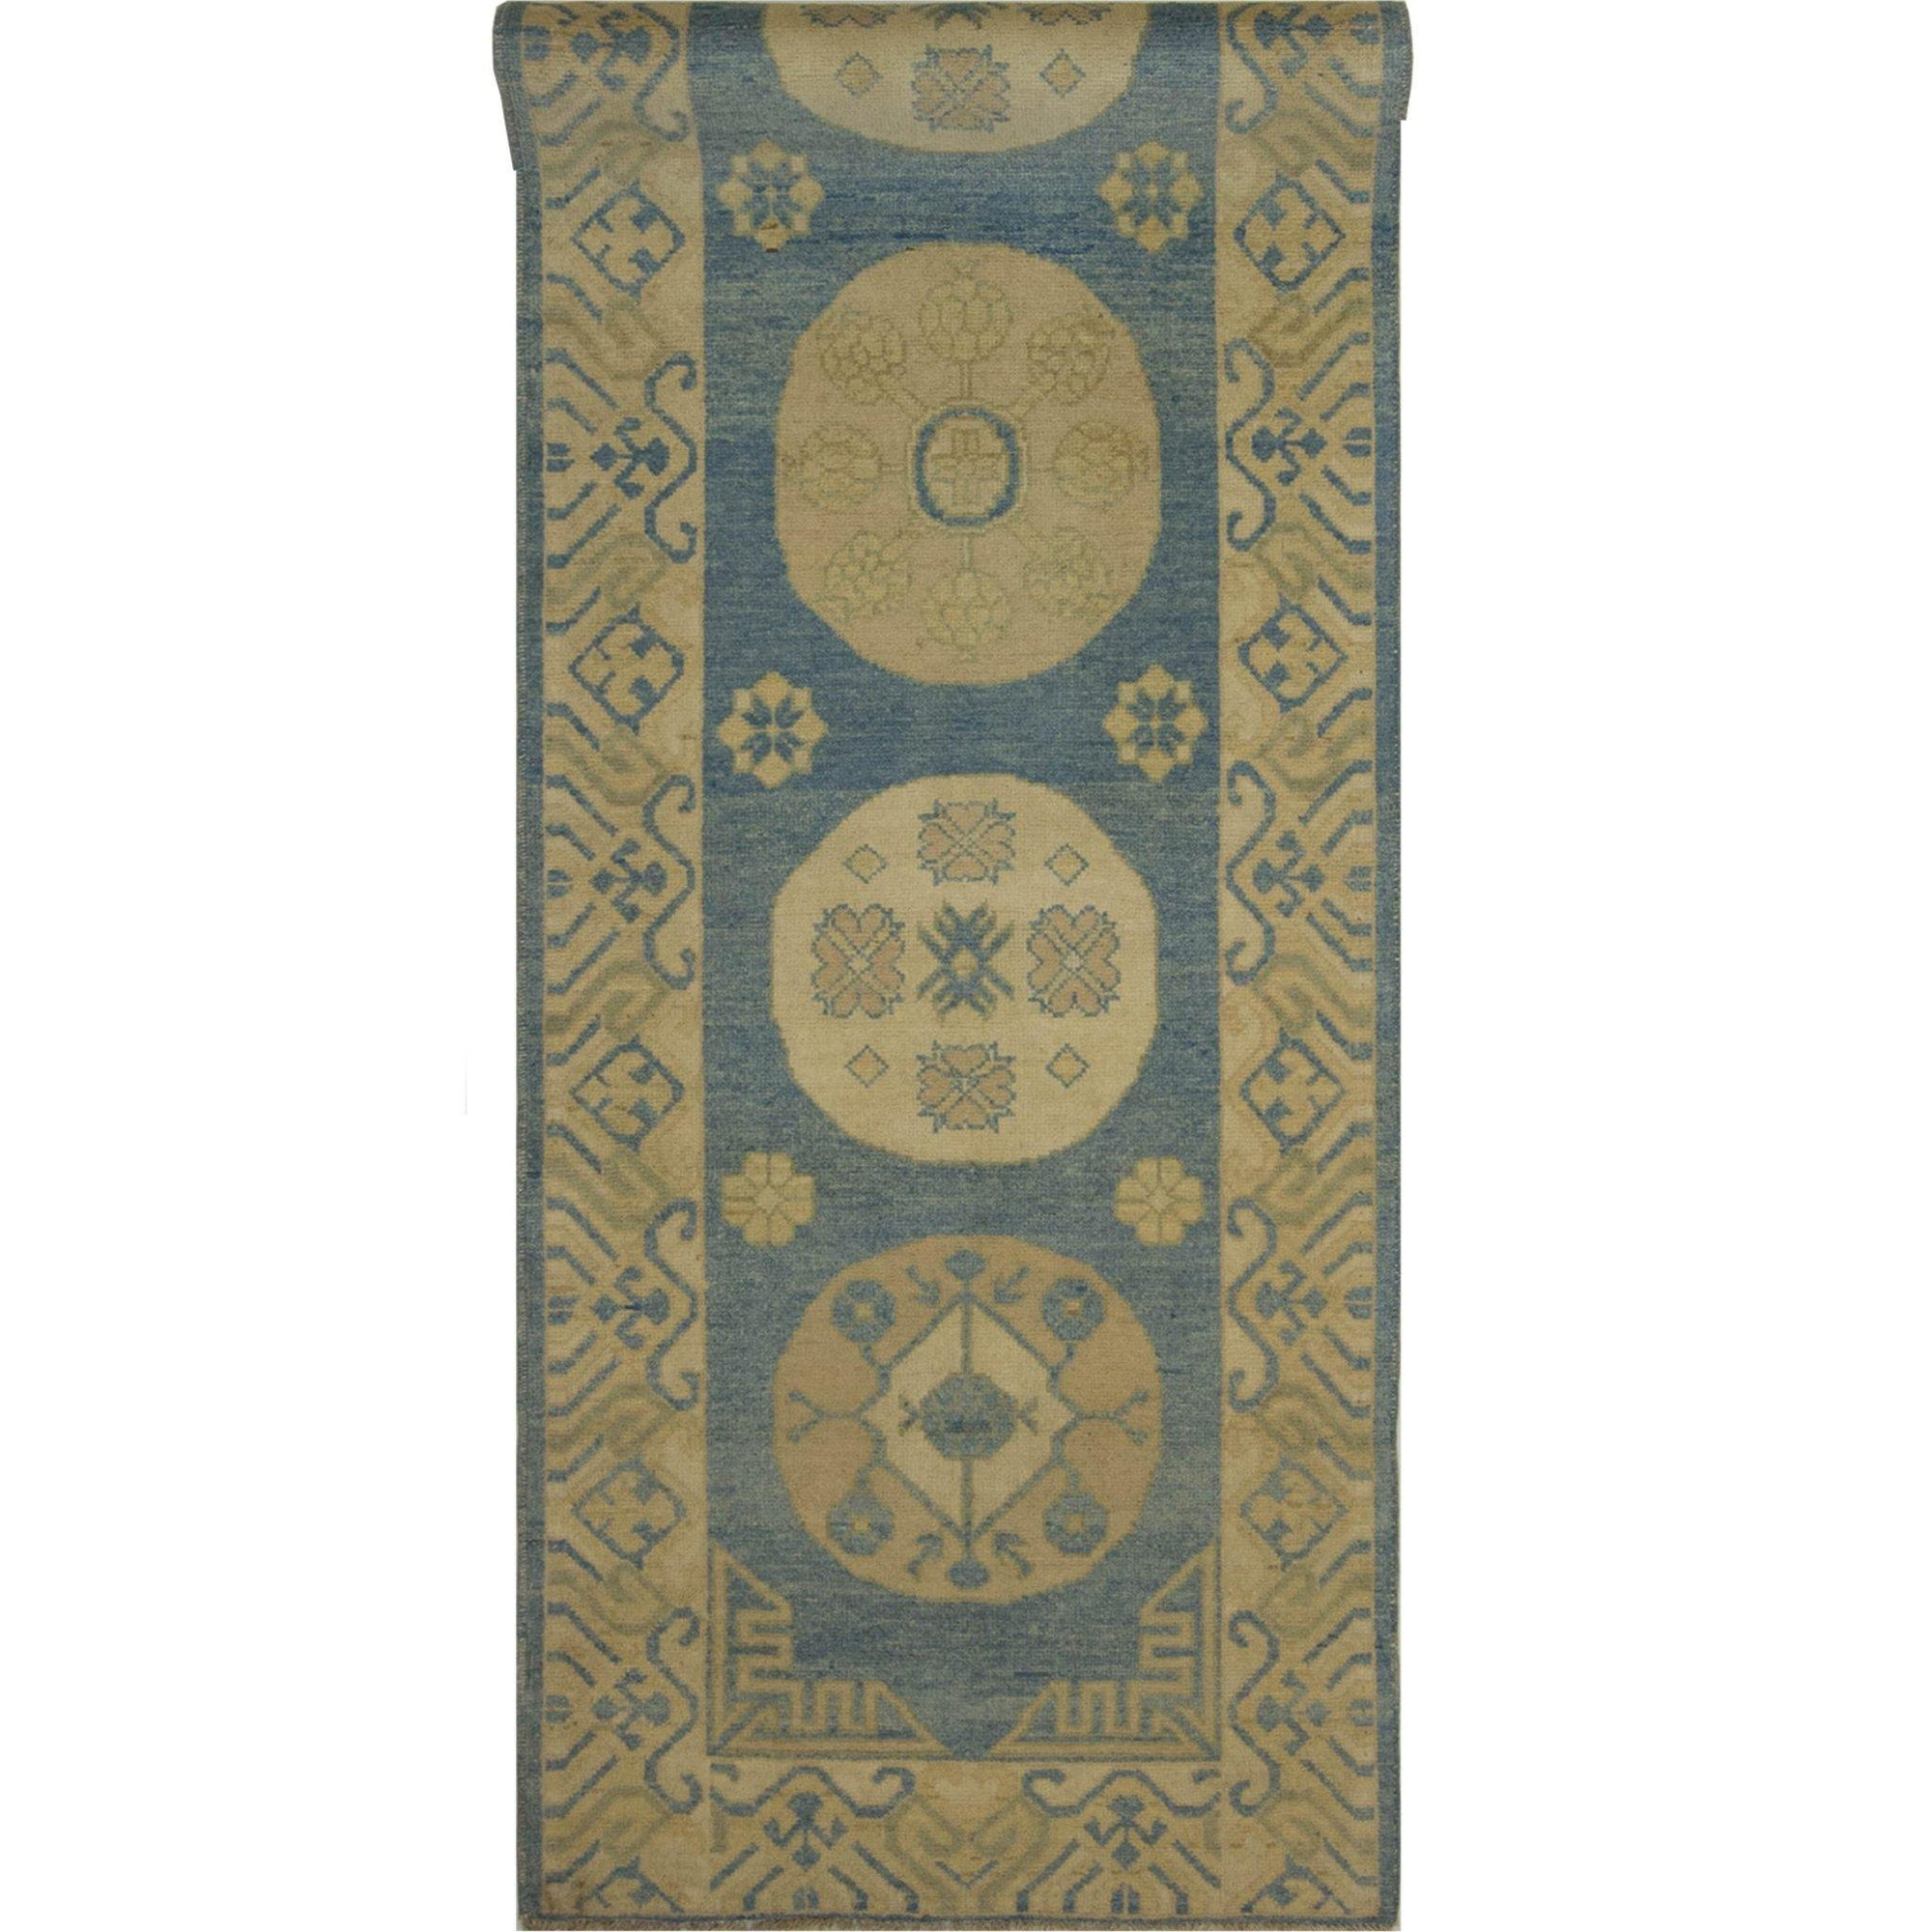 Hand-knotted Wool Khothan Runner 83cm x 282cm Persian-Rug | House-of-Haghi | NewMarket | Auckland | NZ | Handmade Persian Rugs | Hand Knotted Persian Rugs